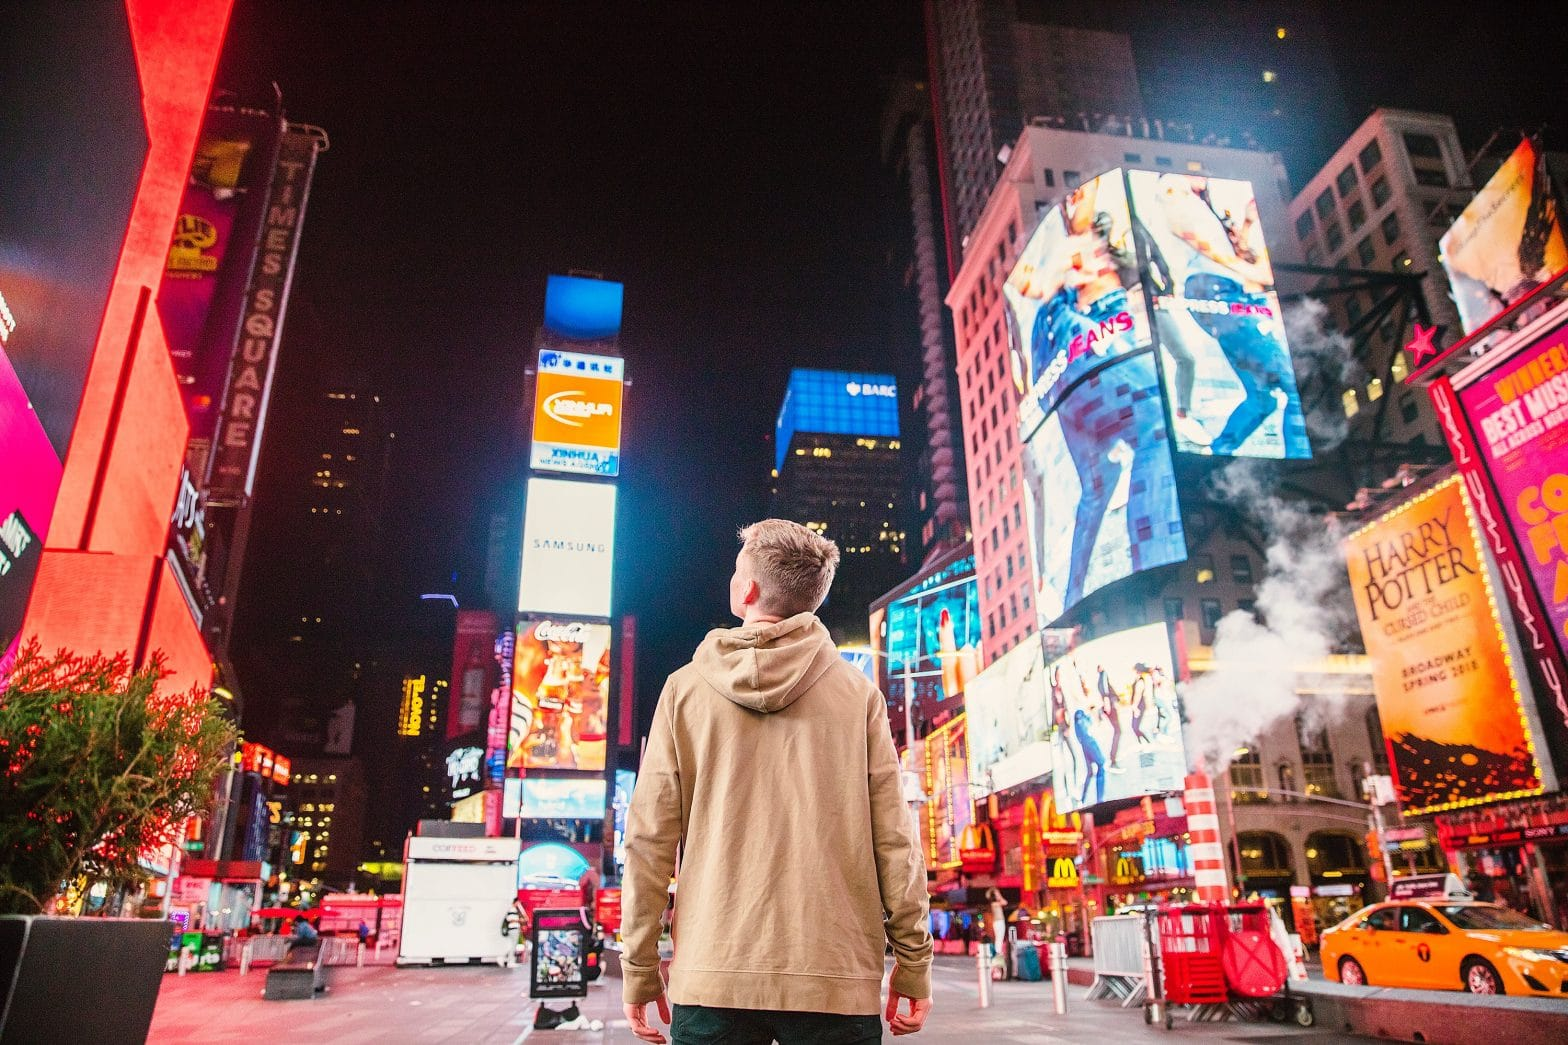 Young man in a hoodie staring at digital advertisements in Times Square, New York City